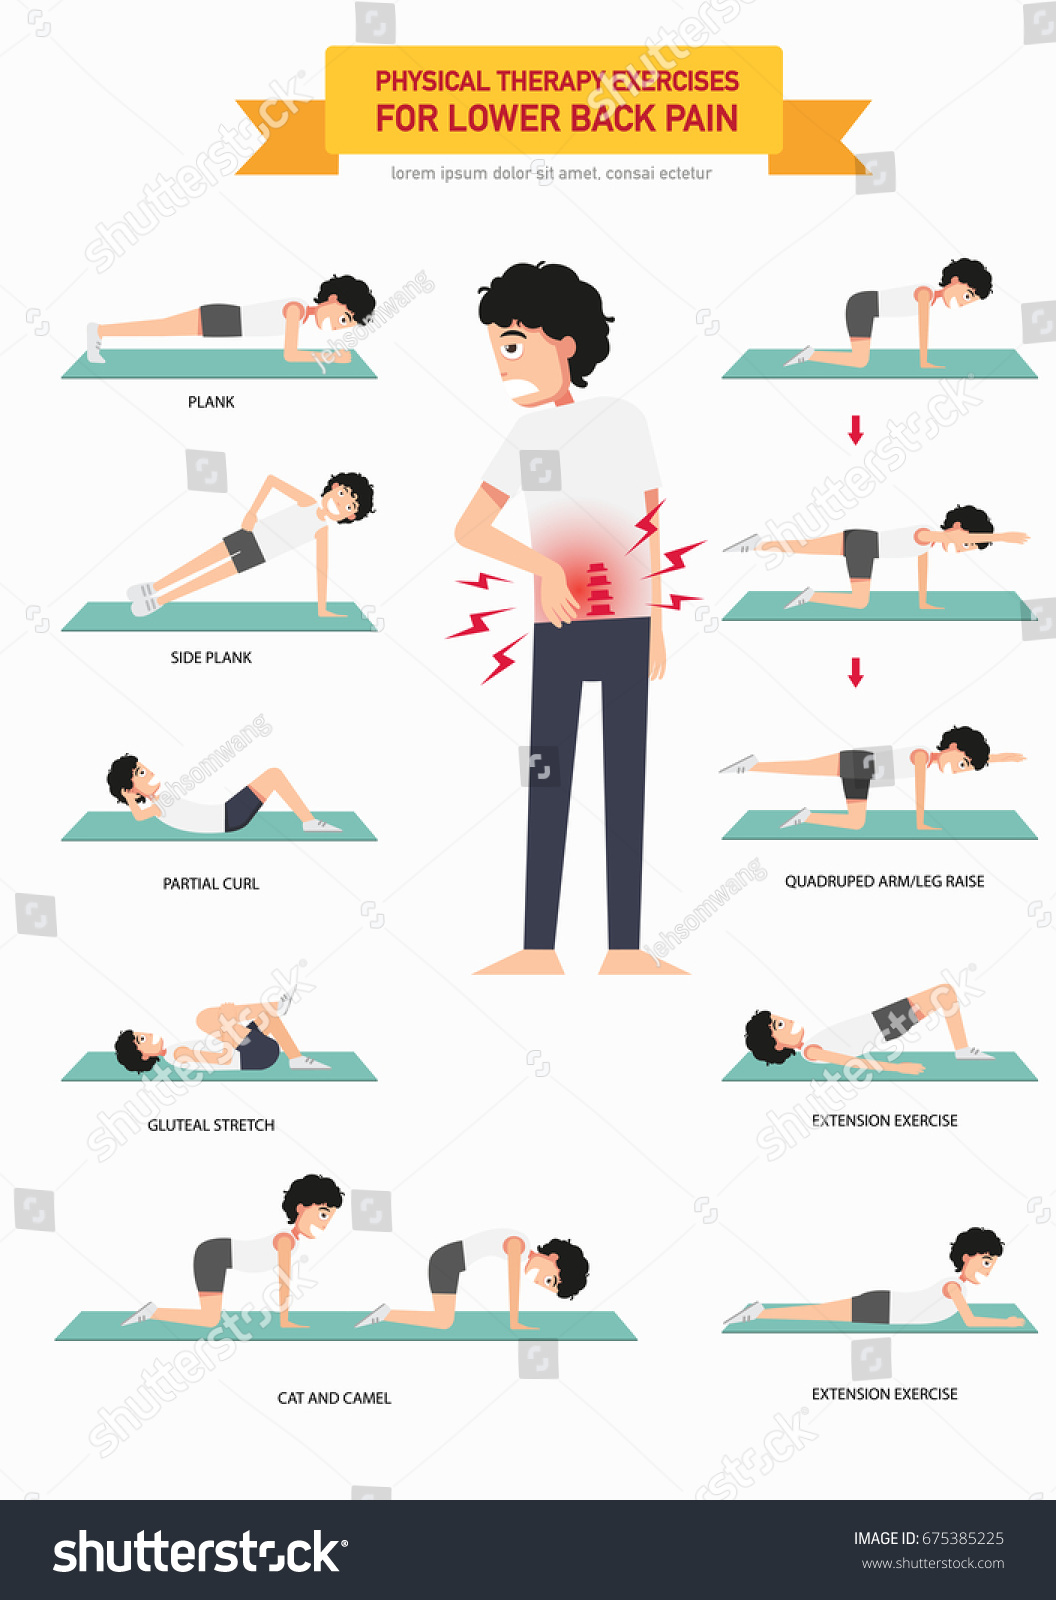 Back exercise lower physical therapy - Physical Therapy Exercises For Lower Back Pain Infographic Vector Illustration